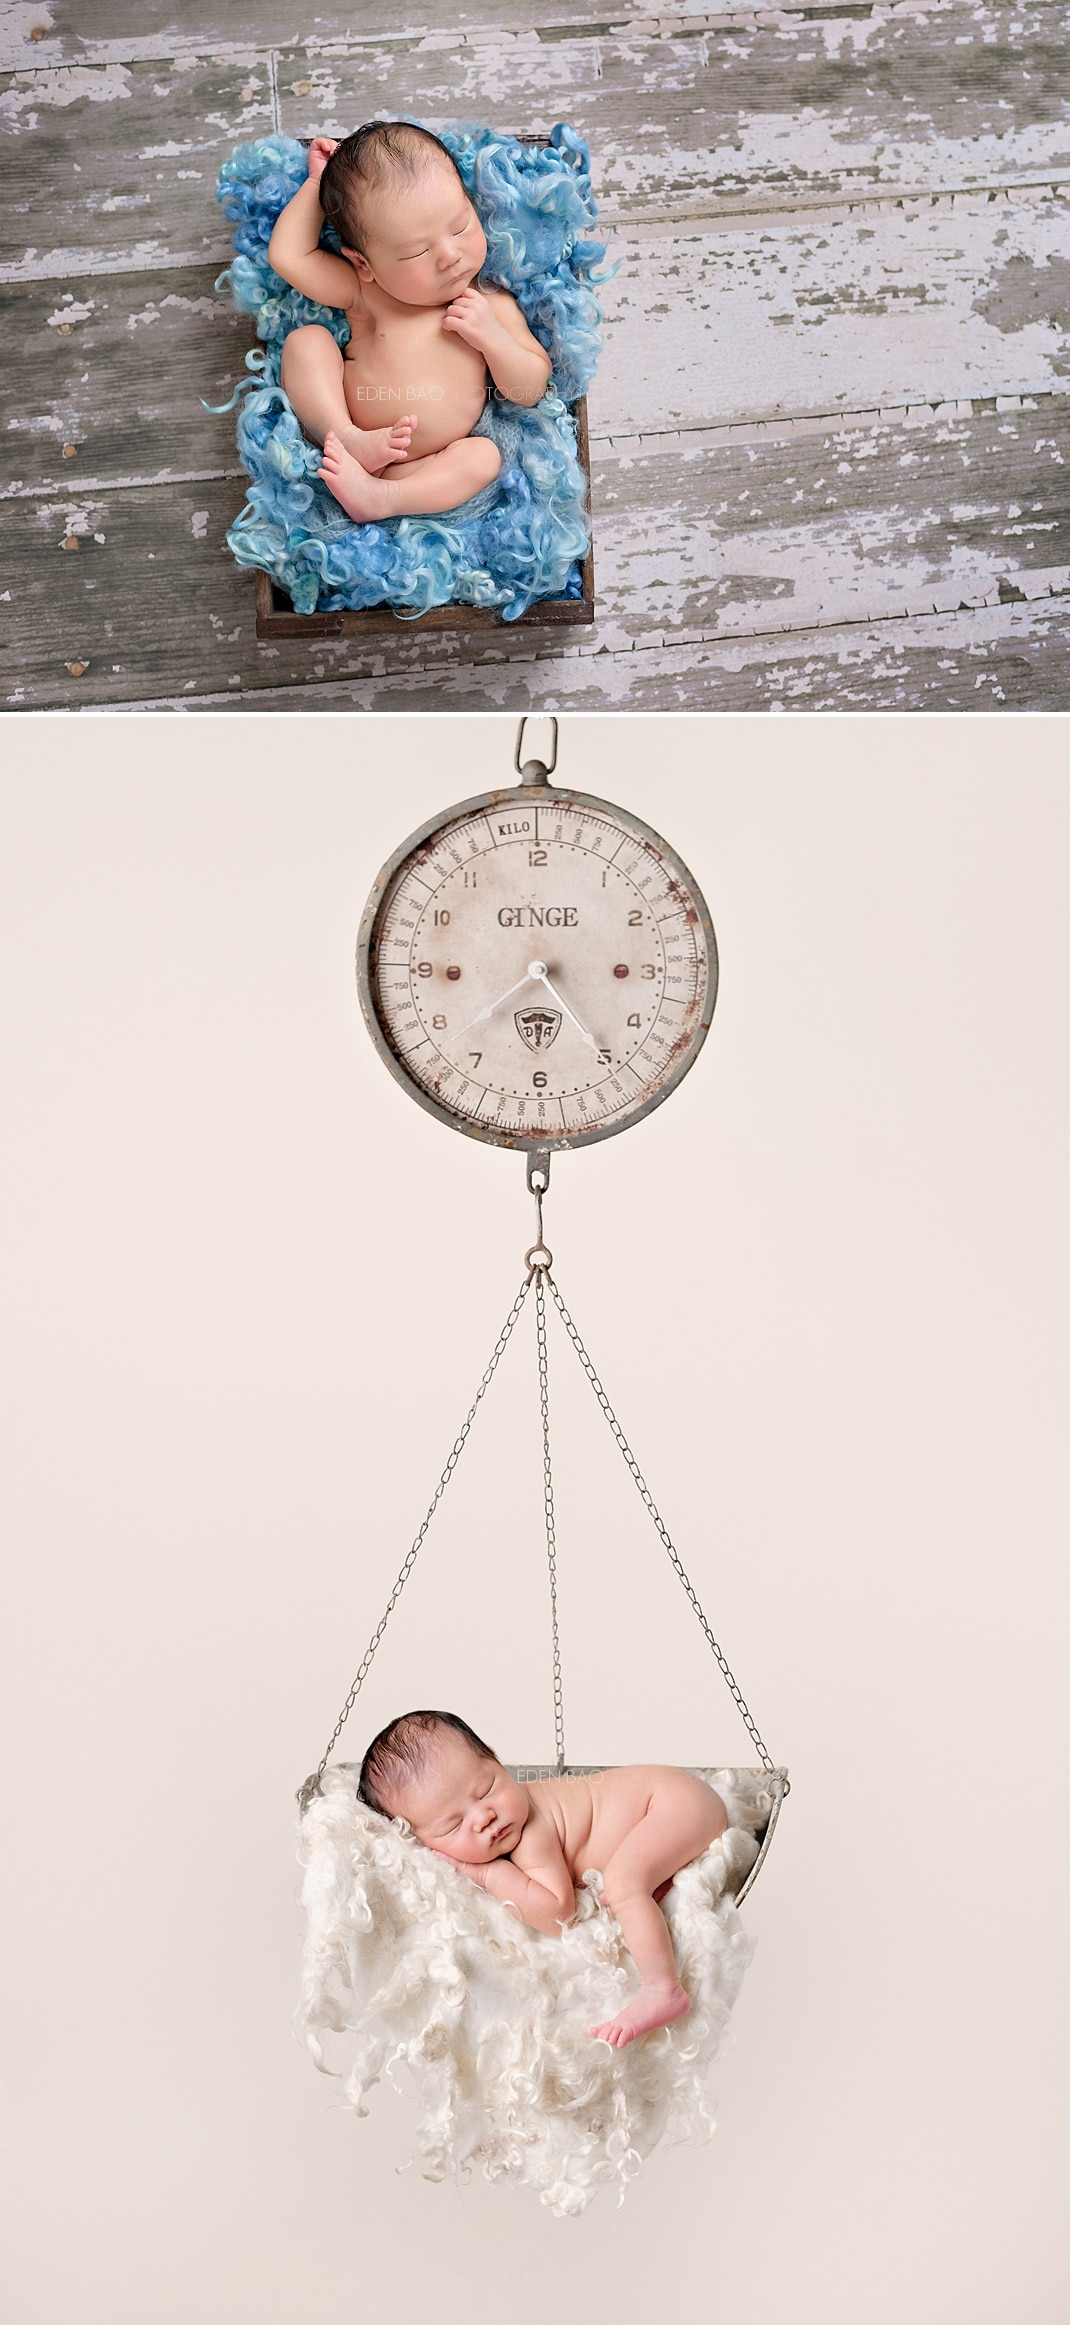 Baby Photography Seattle hanging scale